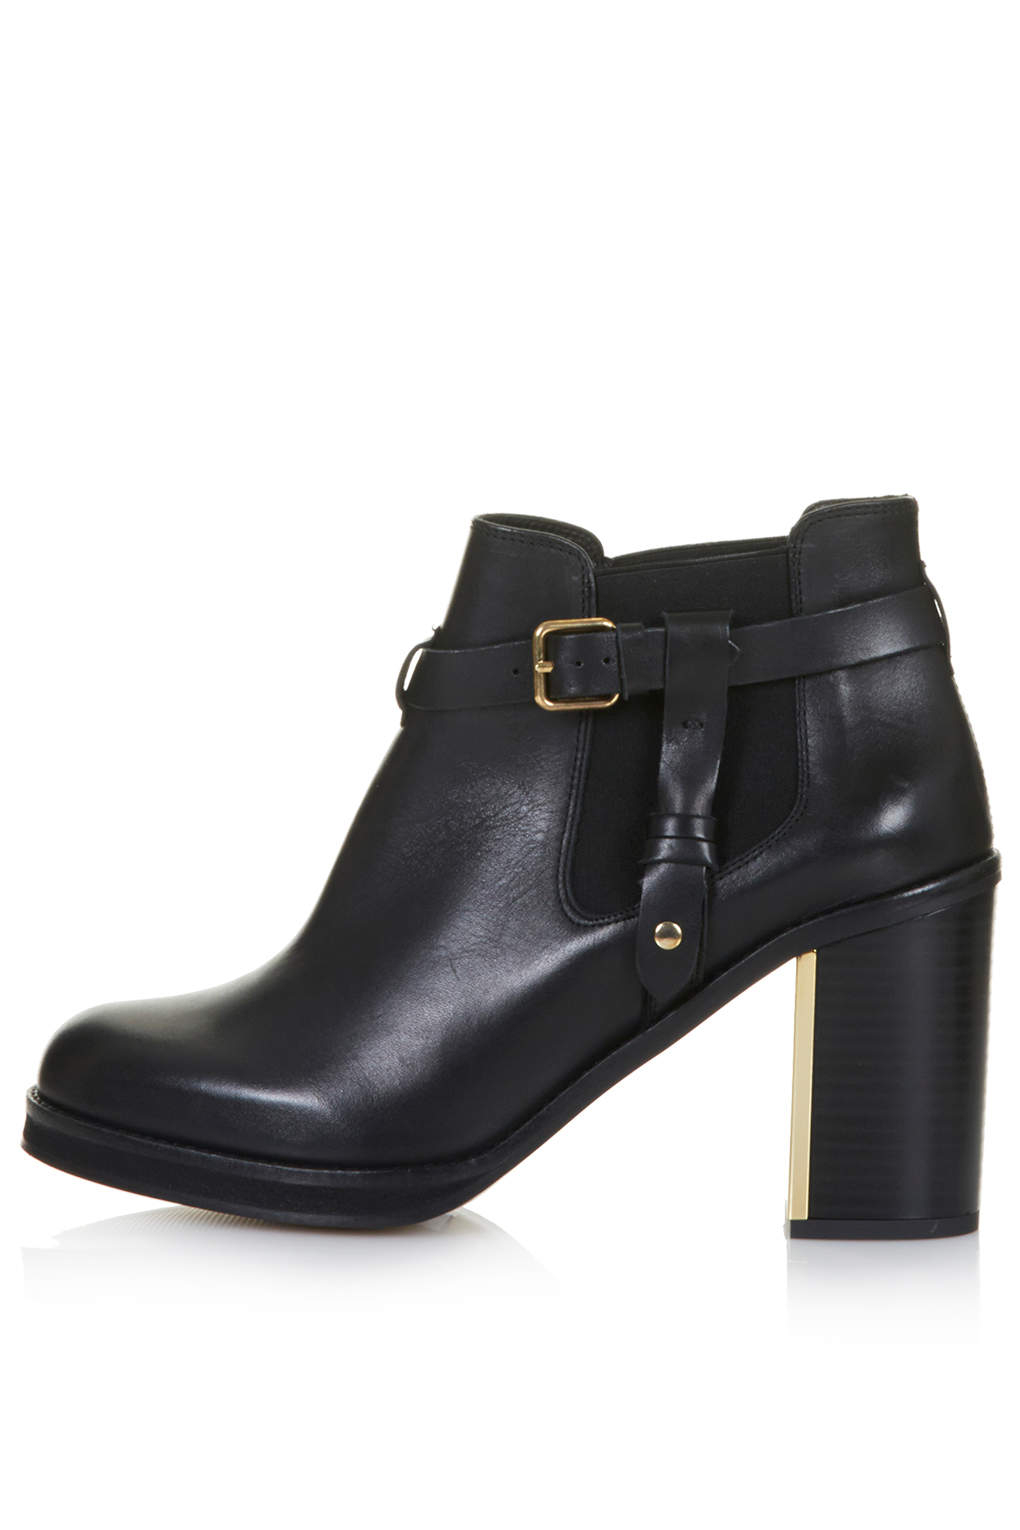 topshop mine leather buckled ankle boots in black lyst